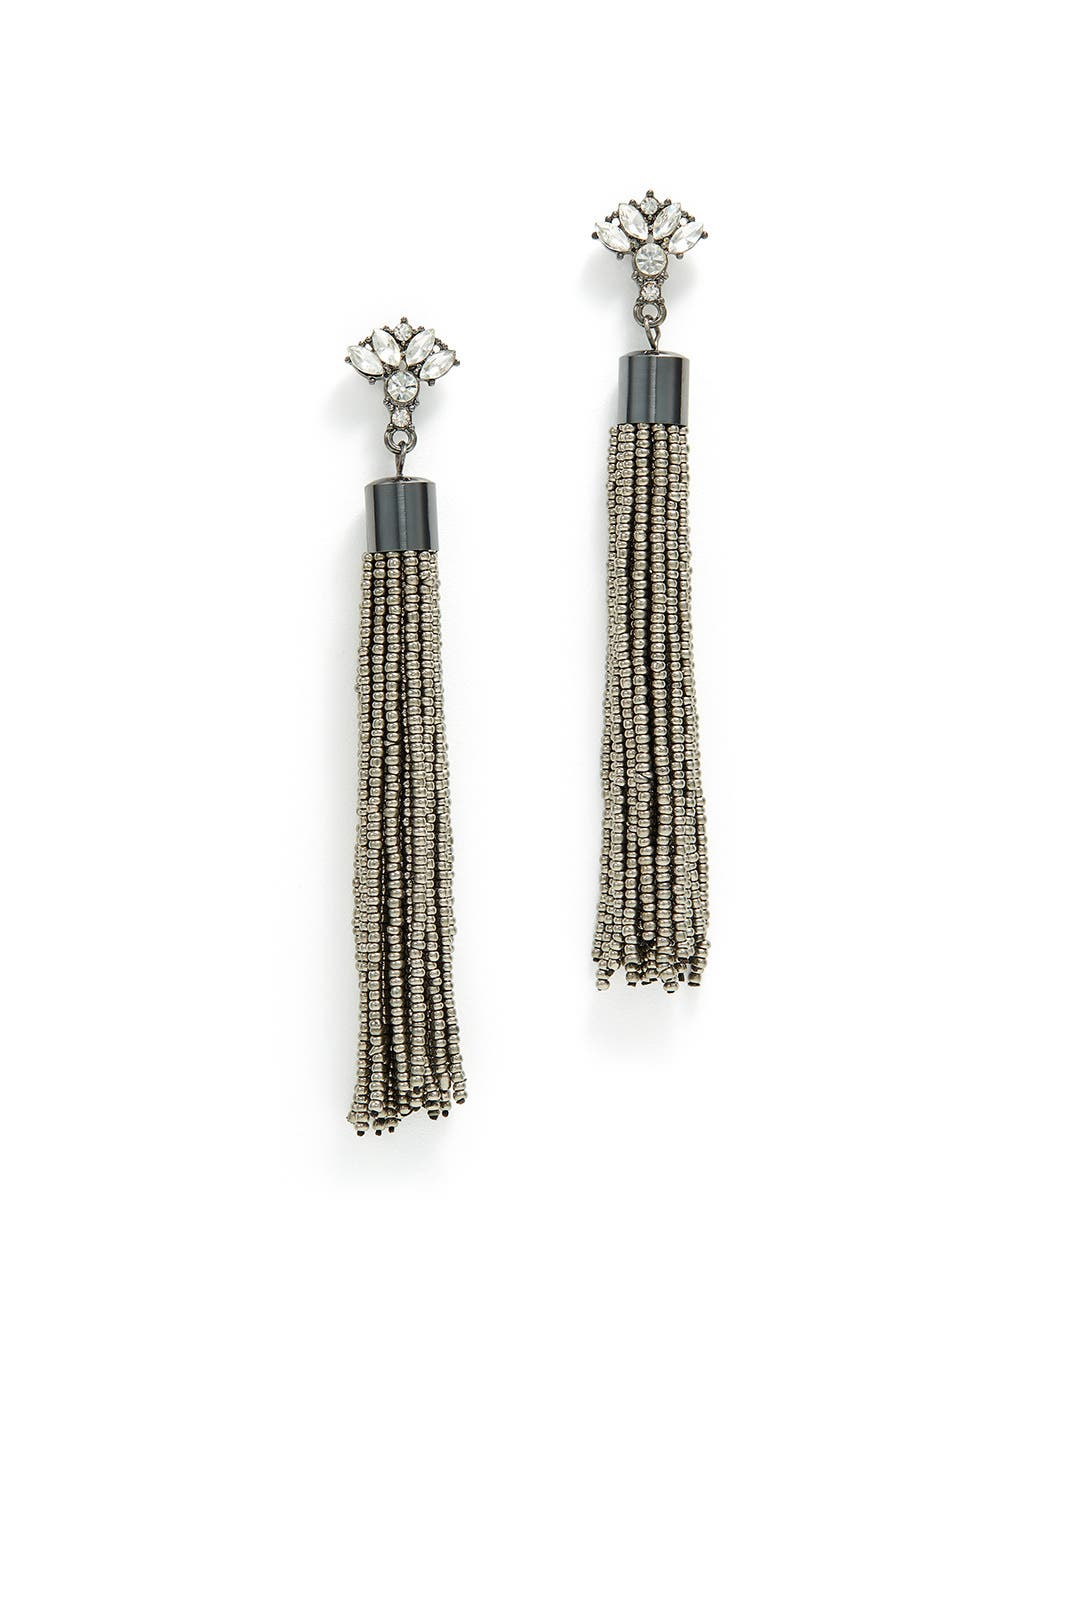 56dc339b0 Earrings - Slate & Willow Accessories Great selection and prices for ...